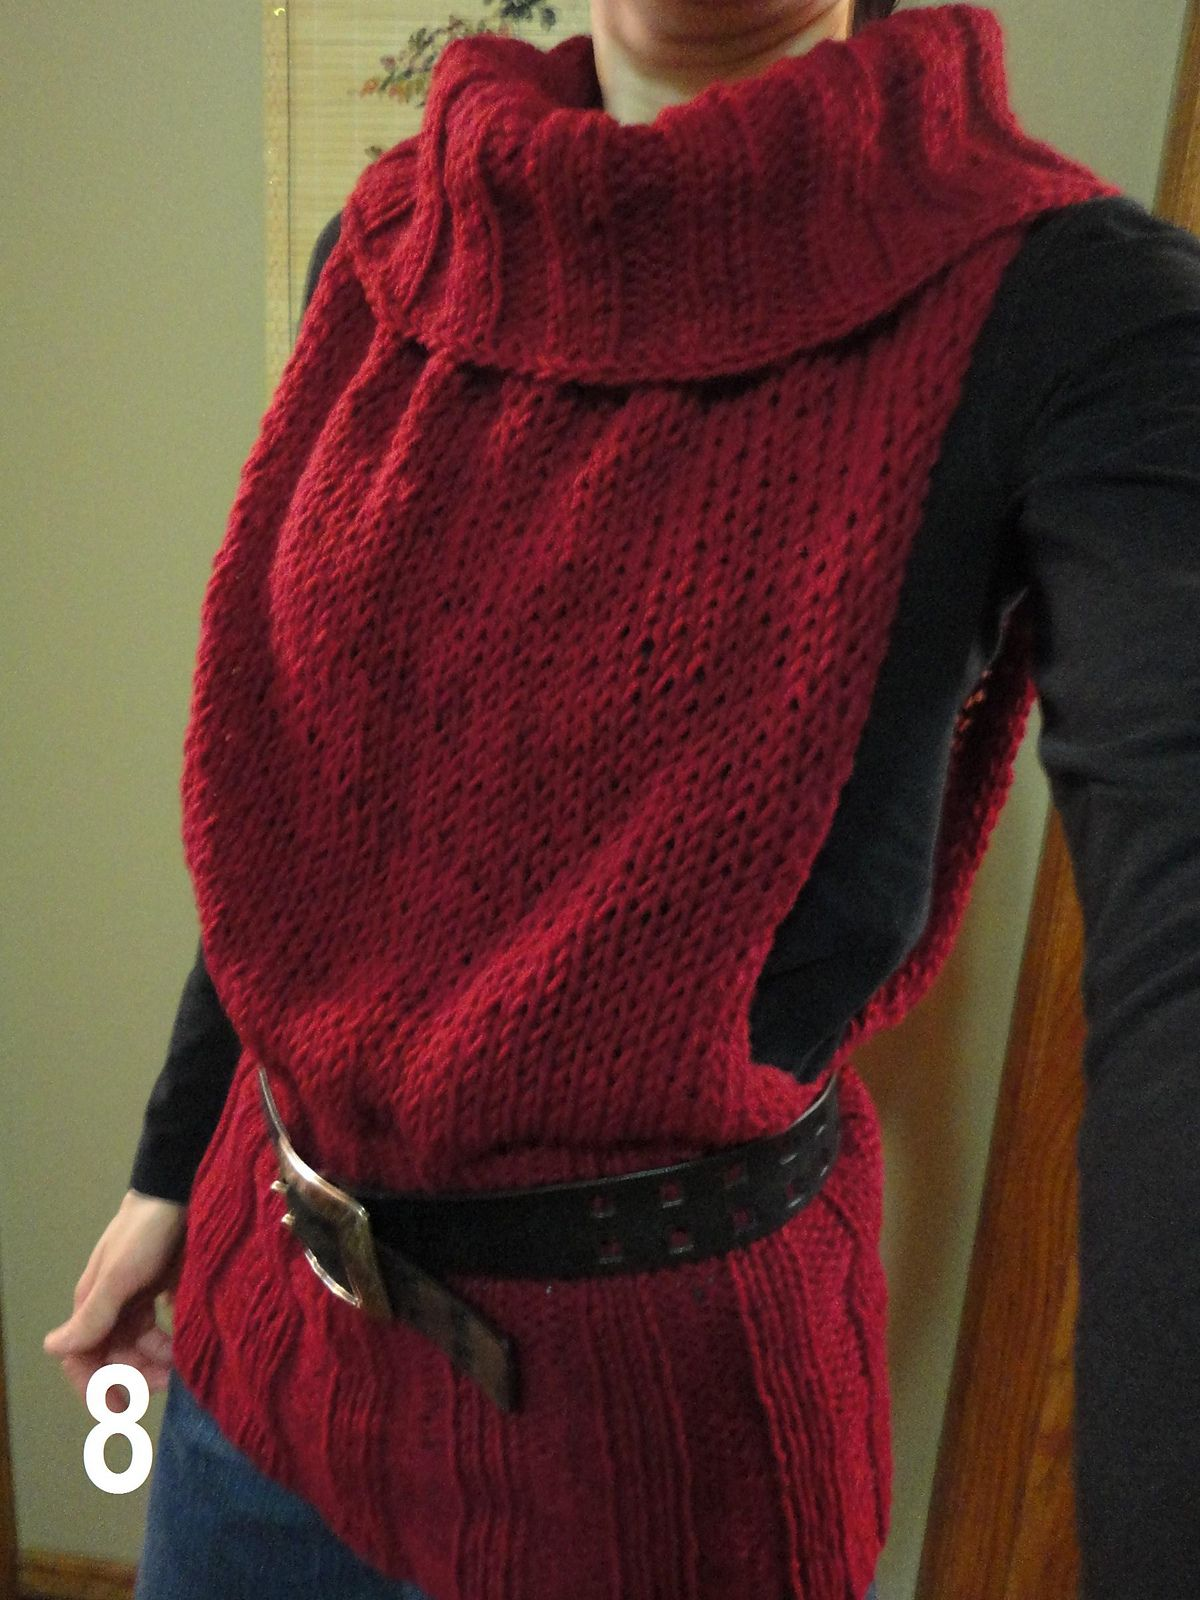 Ravelry: convertible (halter, tunic, cowl, scarf) by Suzanne Resaul ...